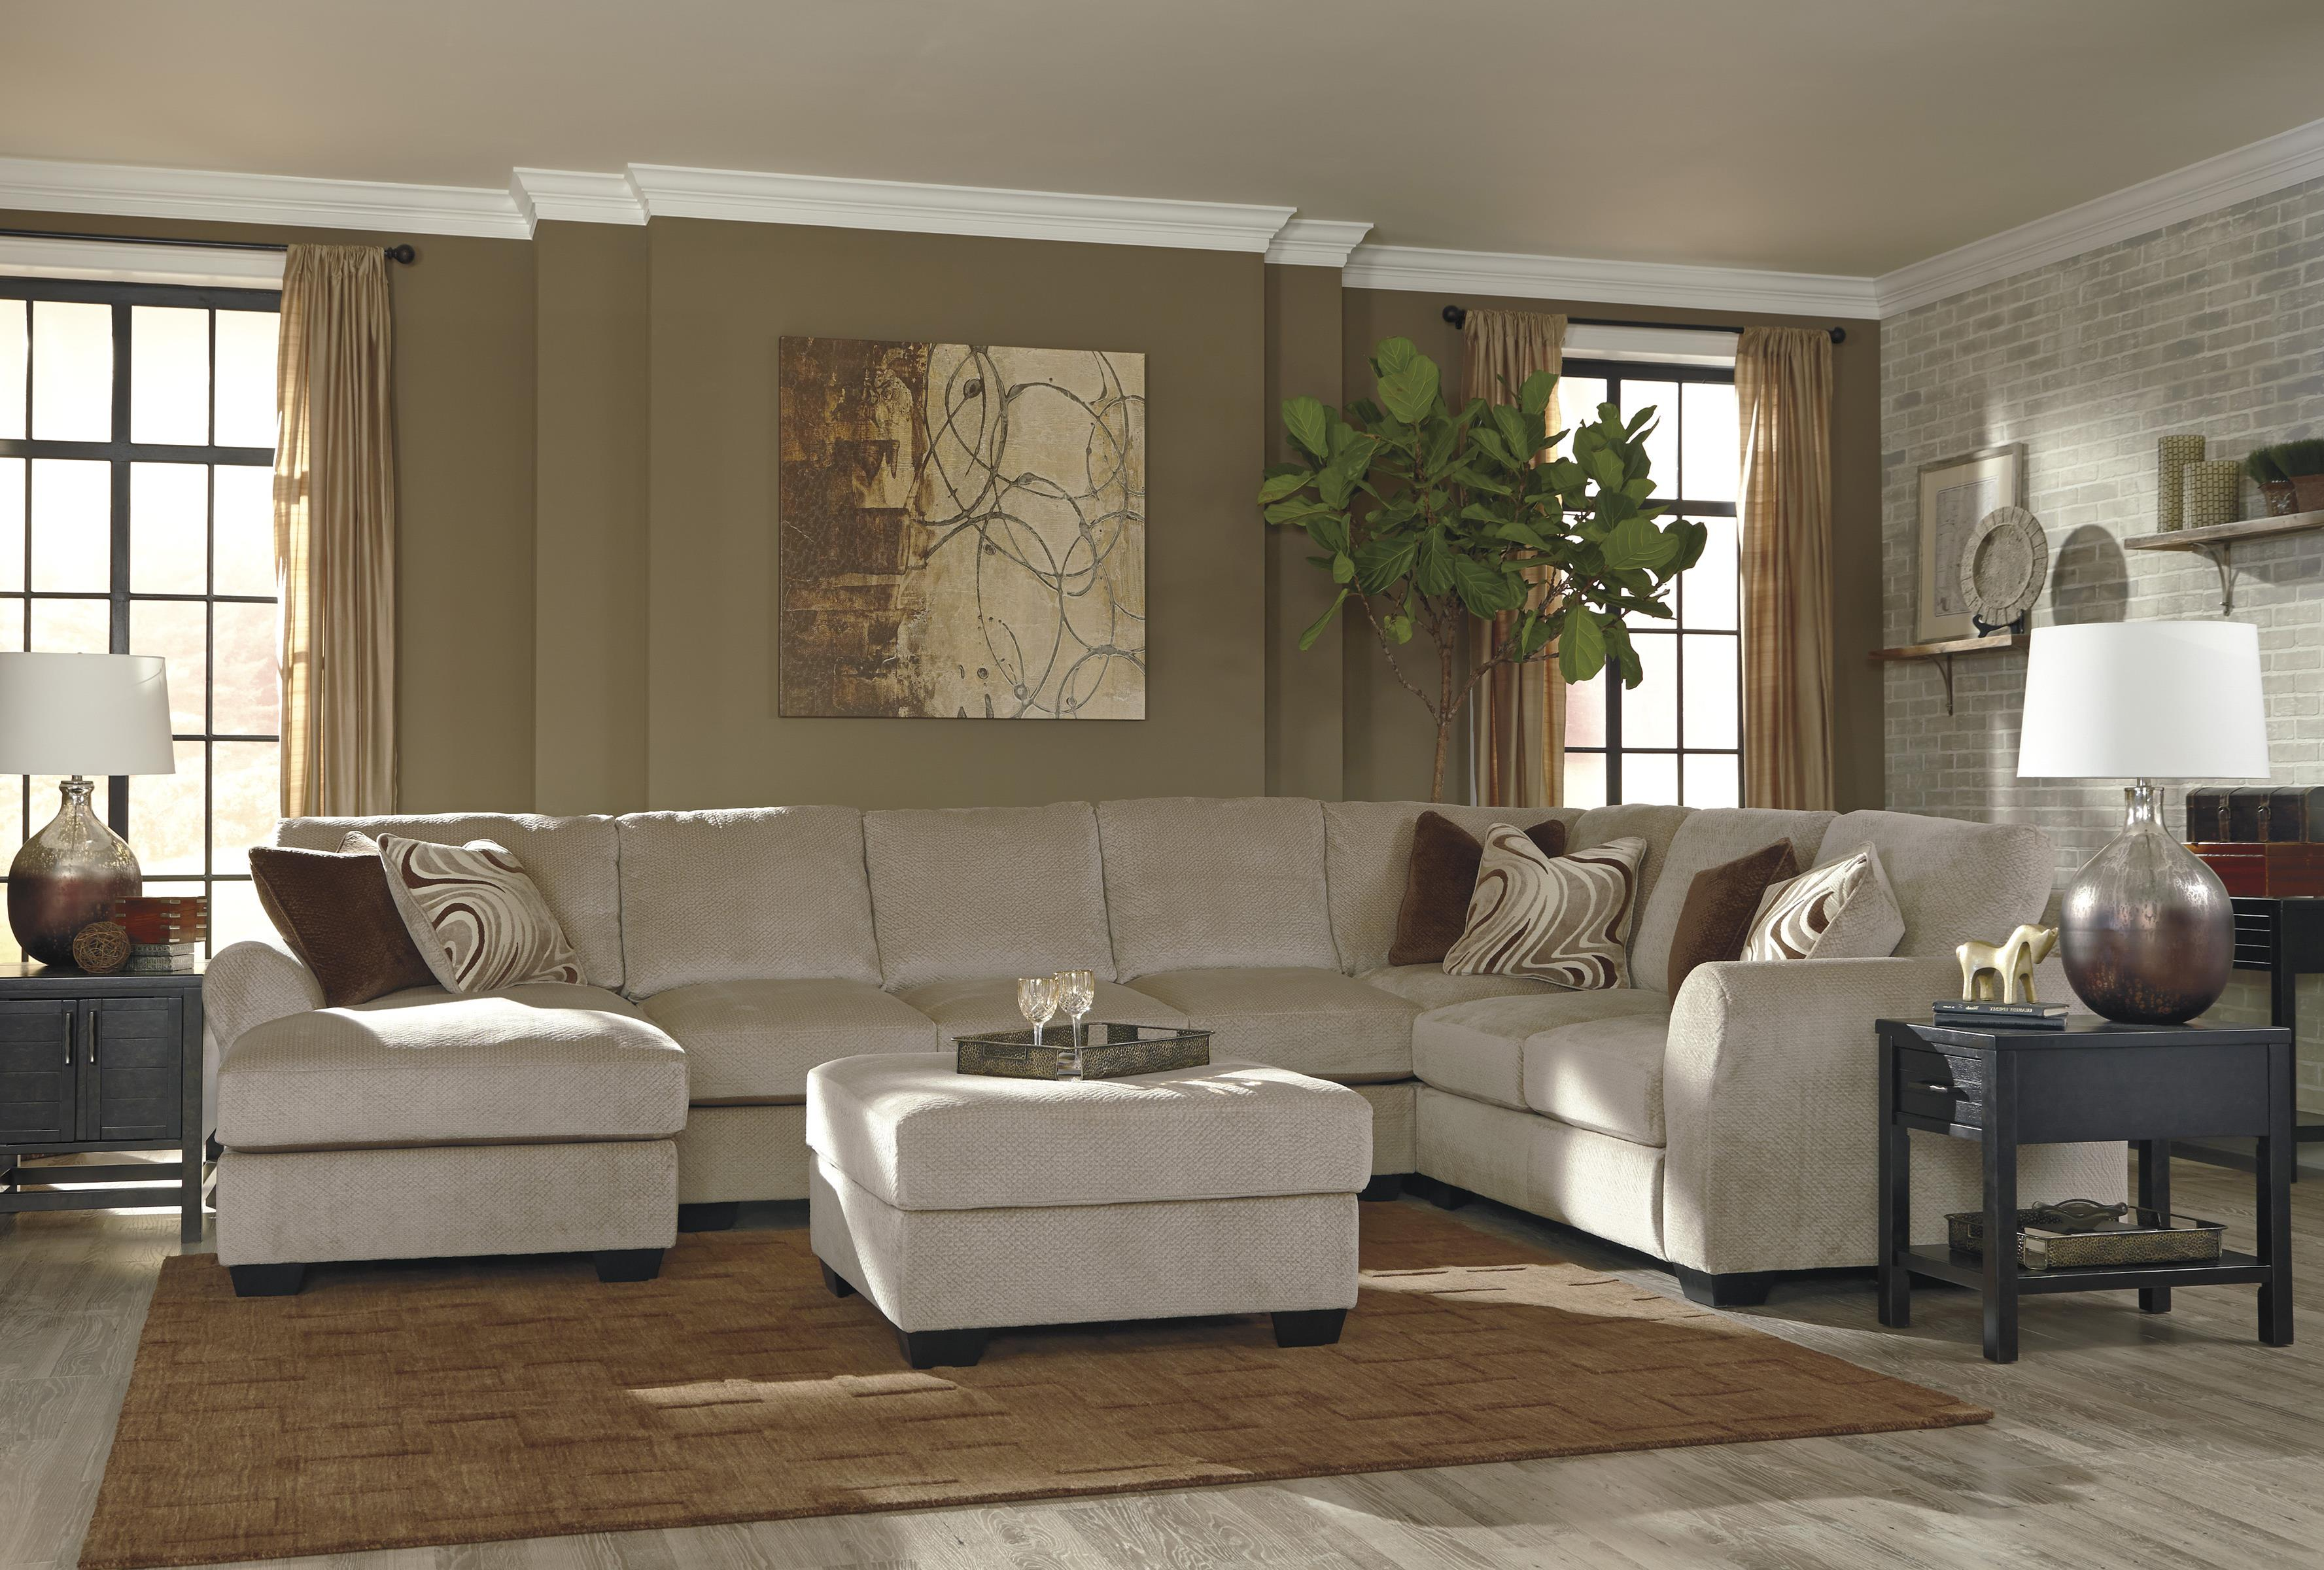 Benchcraft Hazes Stationary Living Room Group - Item Number: 65701 Living Room Group 6